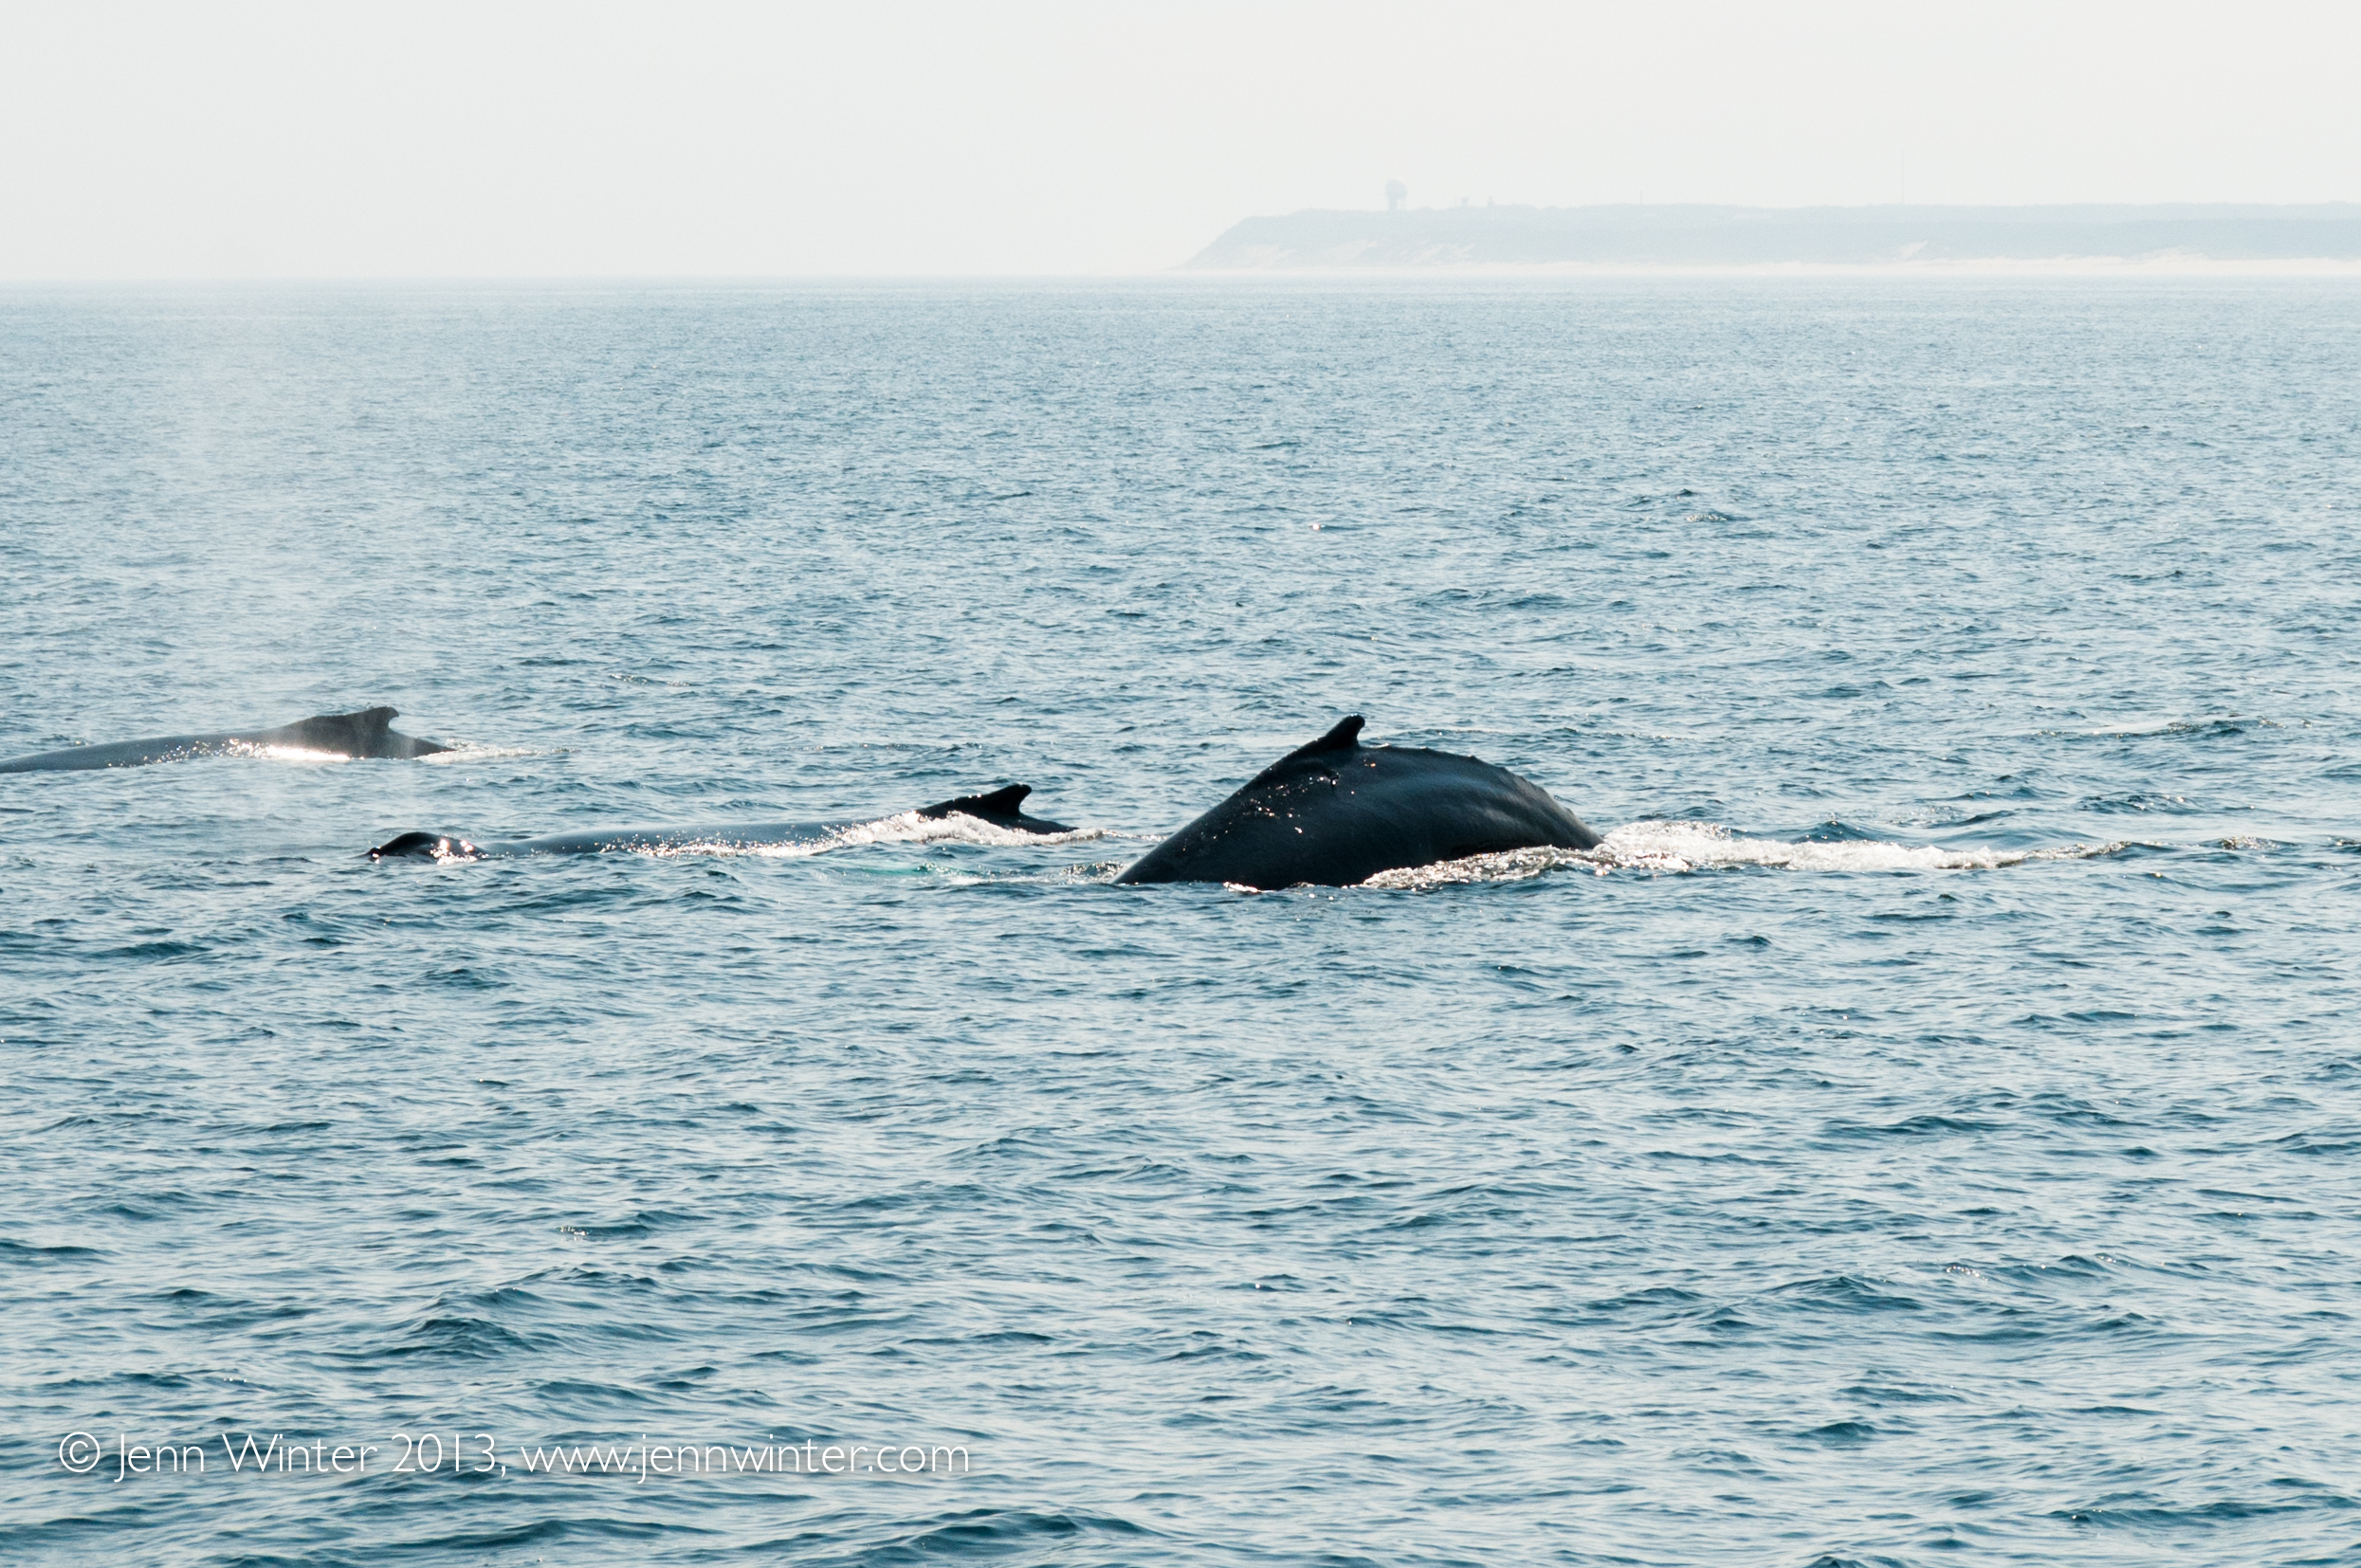 Guaranteed Whale Sightings! In the rare event Capt. Bill and Sons Whale Watch tour not see any whales, passengers will receive a complimentary Whale Watch ticket to use at a future time.